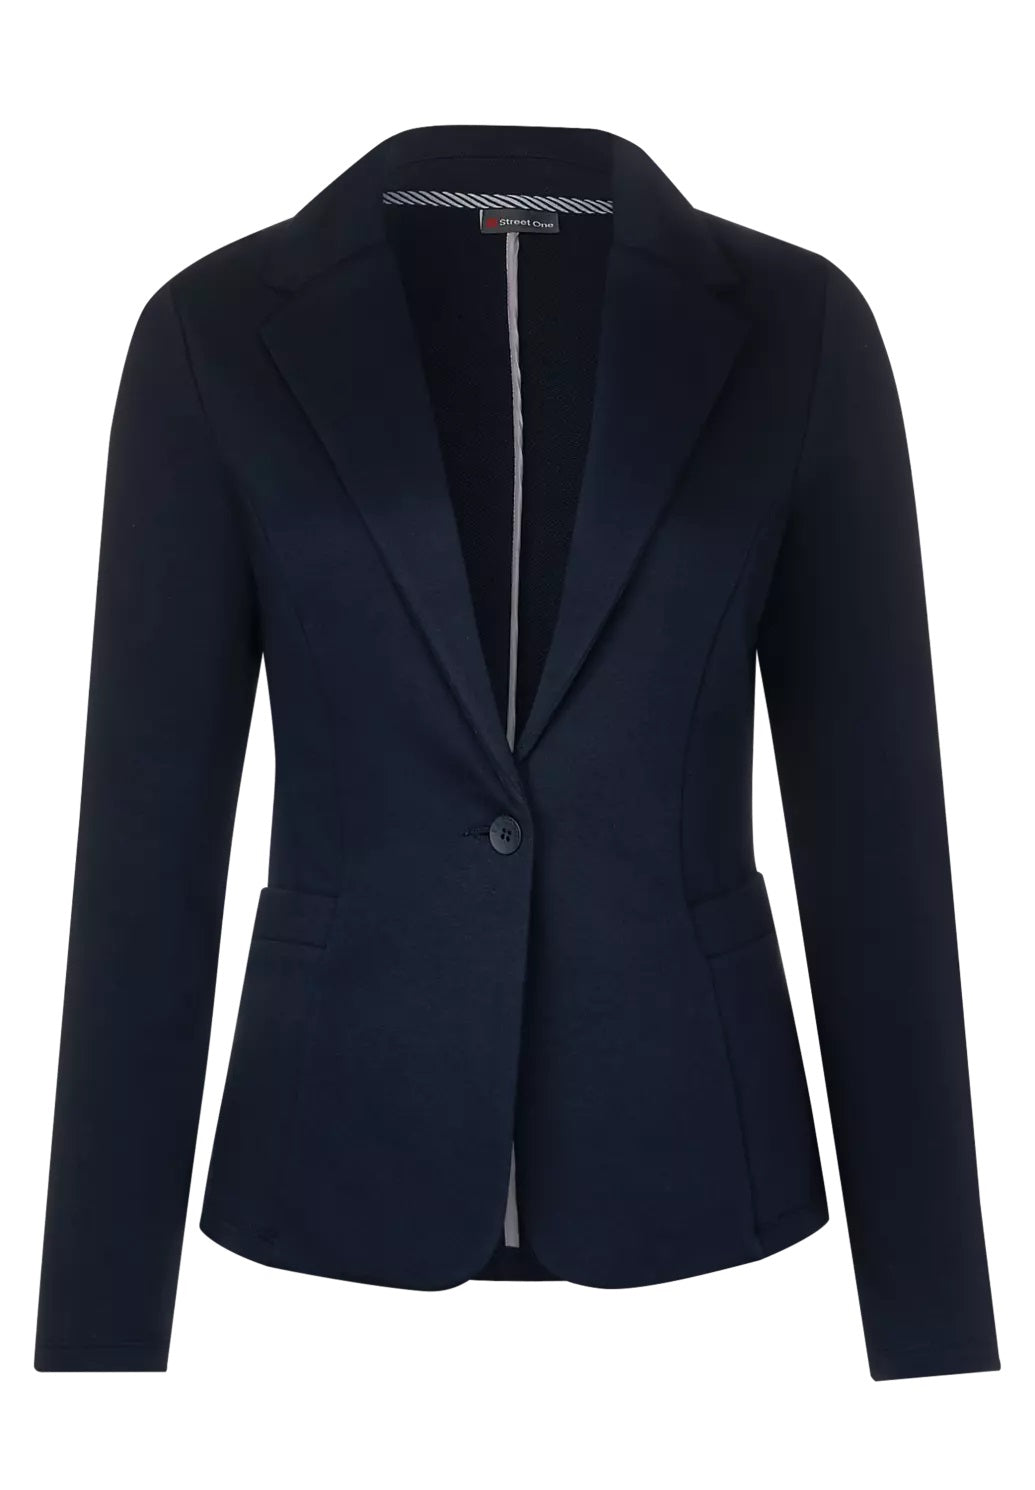 Street One - Blazer in Unifarbe